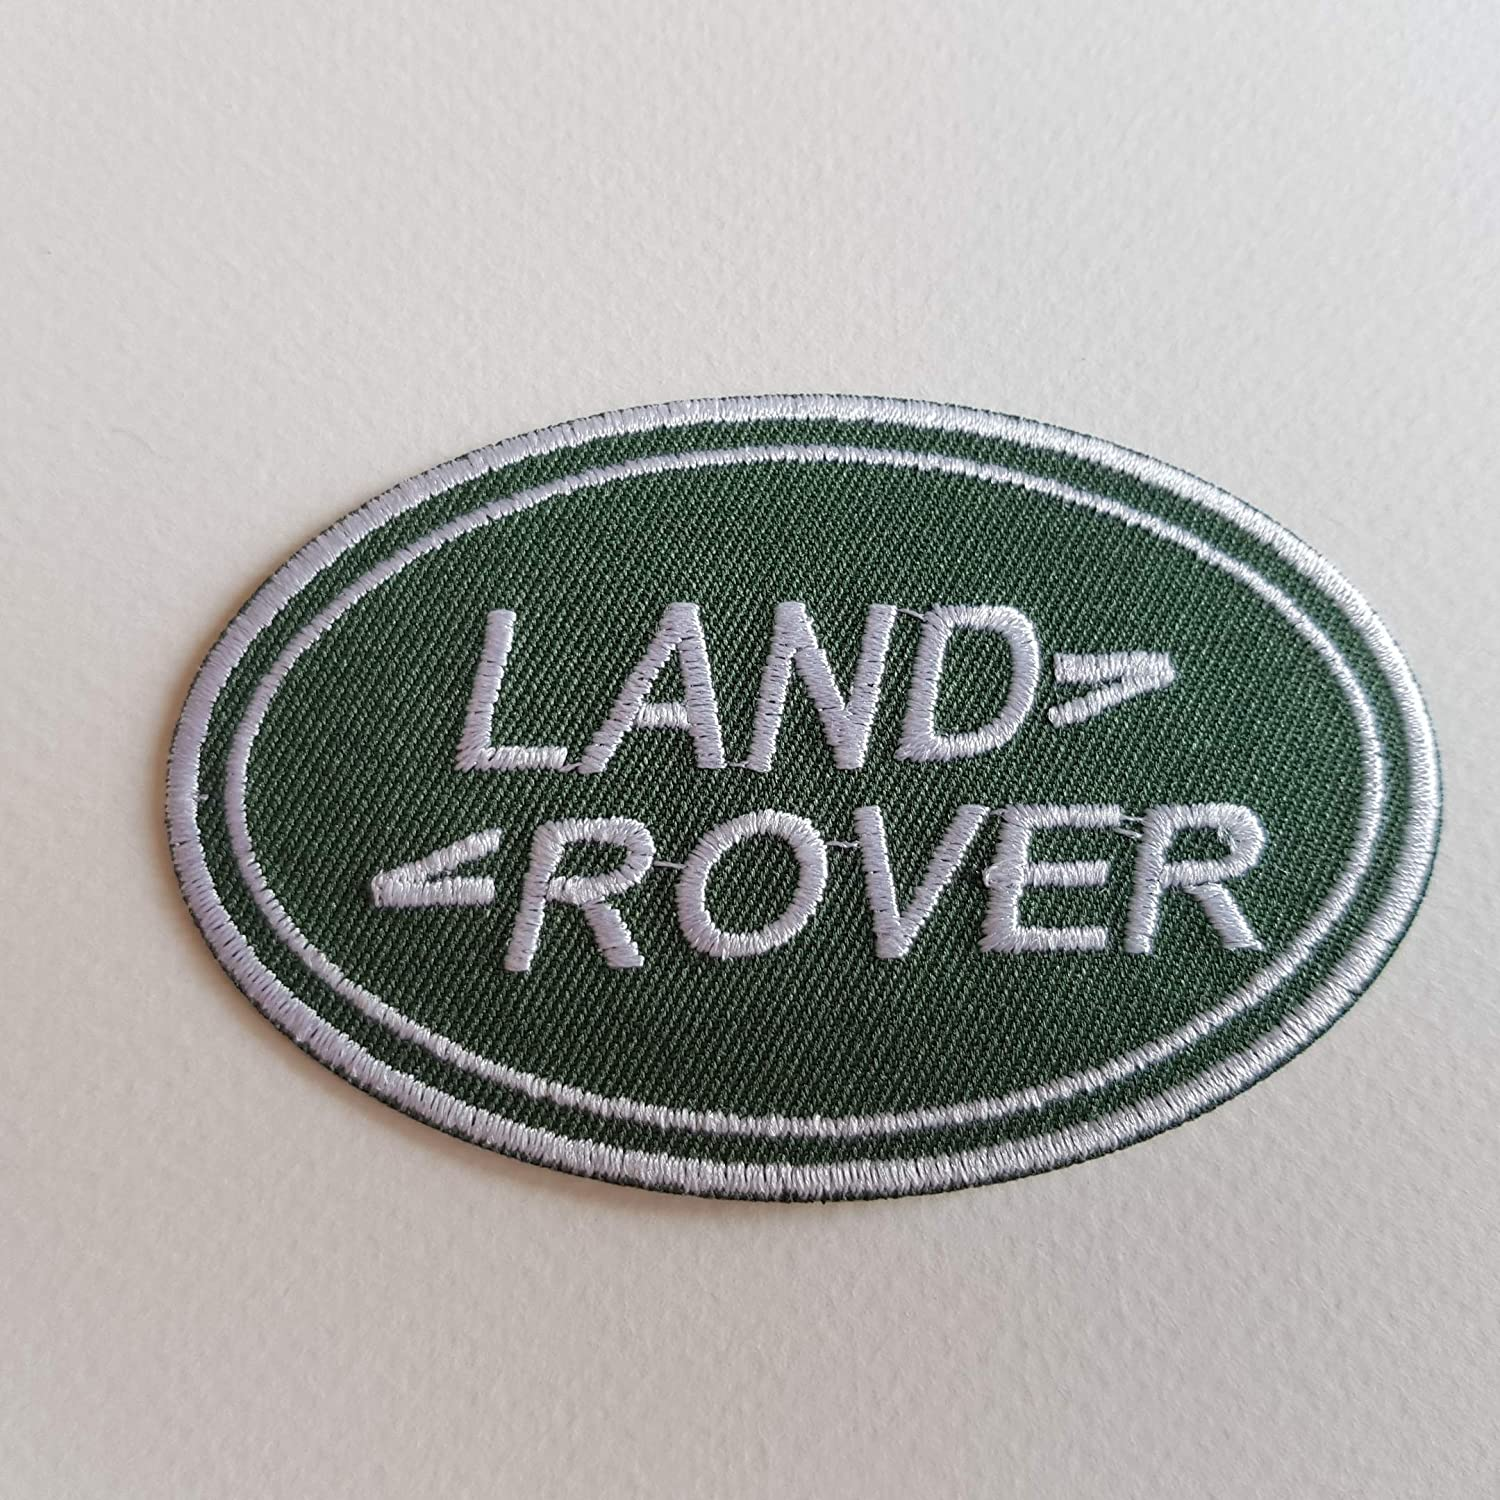 BLUE HAWAI ECUSSON Patches AUFNAHER Toppa THERMOCOLLANT - Land Rover 9 * 5, 5 CM